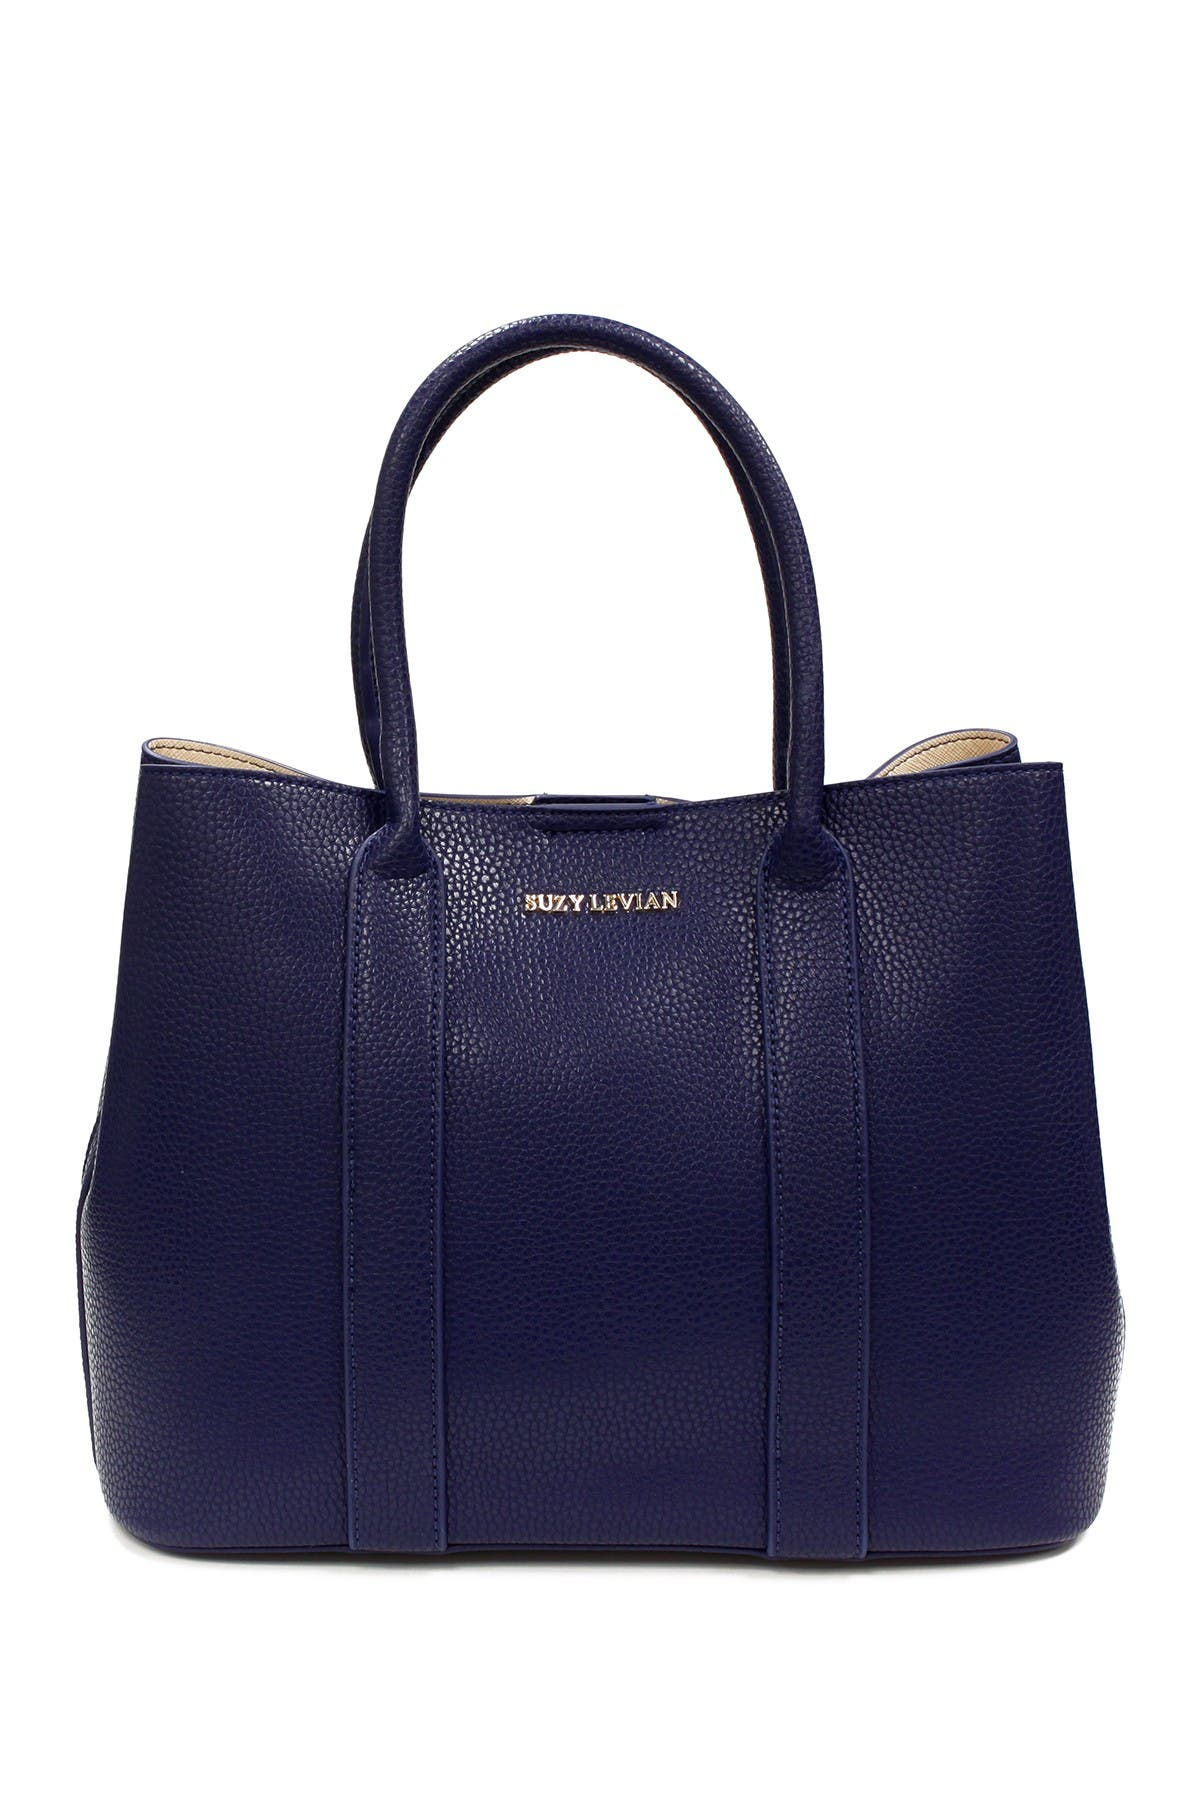 Image of Suzy Levian Pebbled Faux Leather Satchel